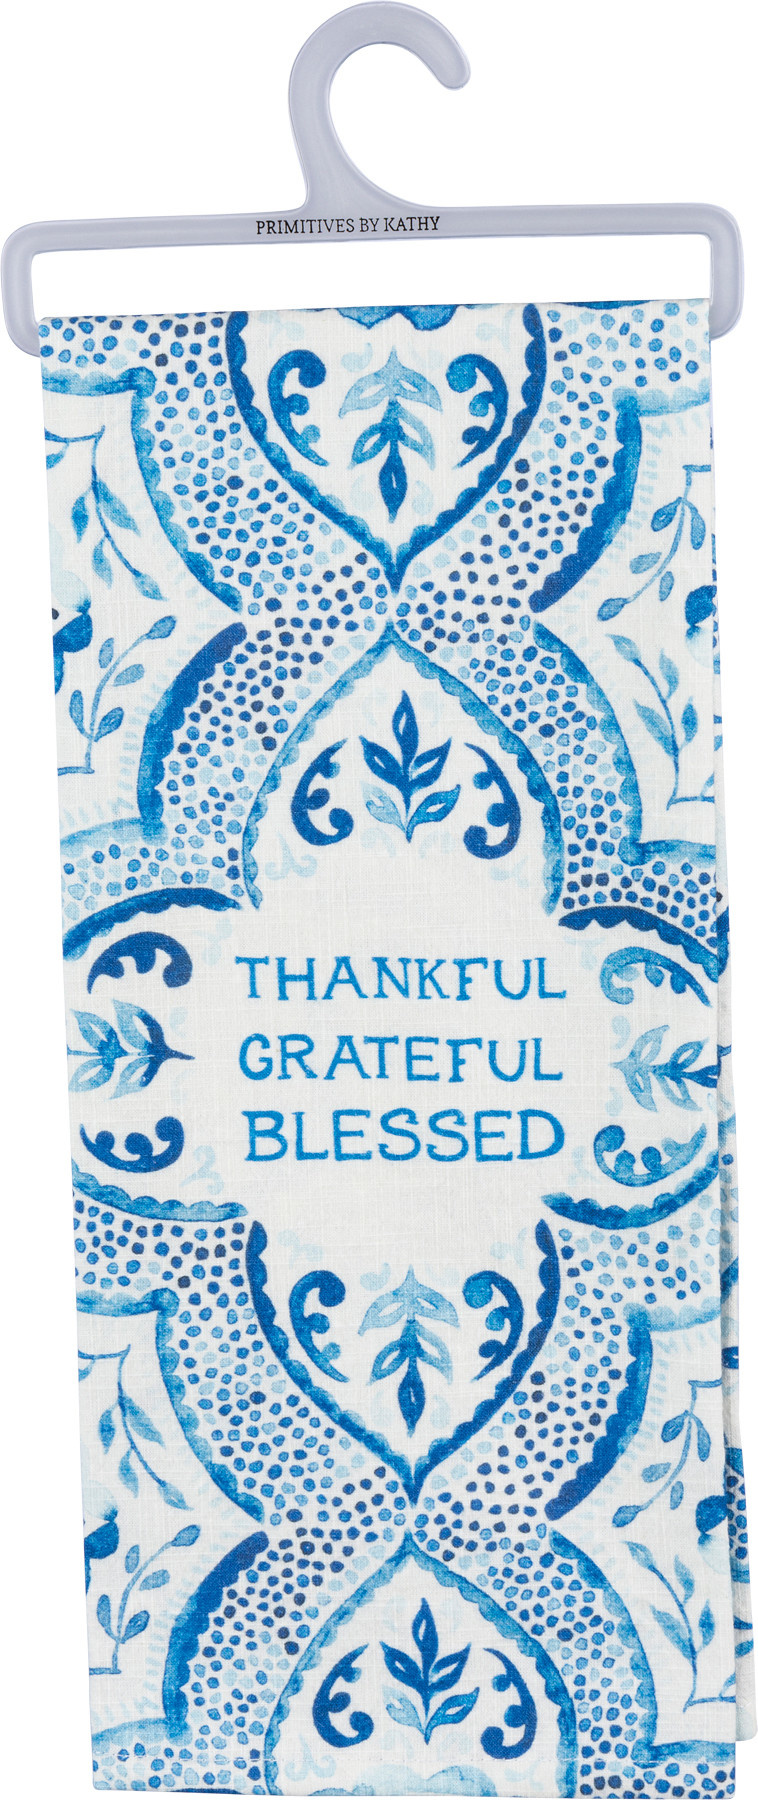 Thankful Grateful Blessed Blue & White Patterned Towel